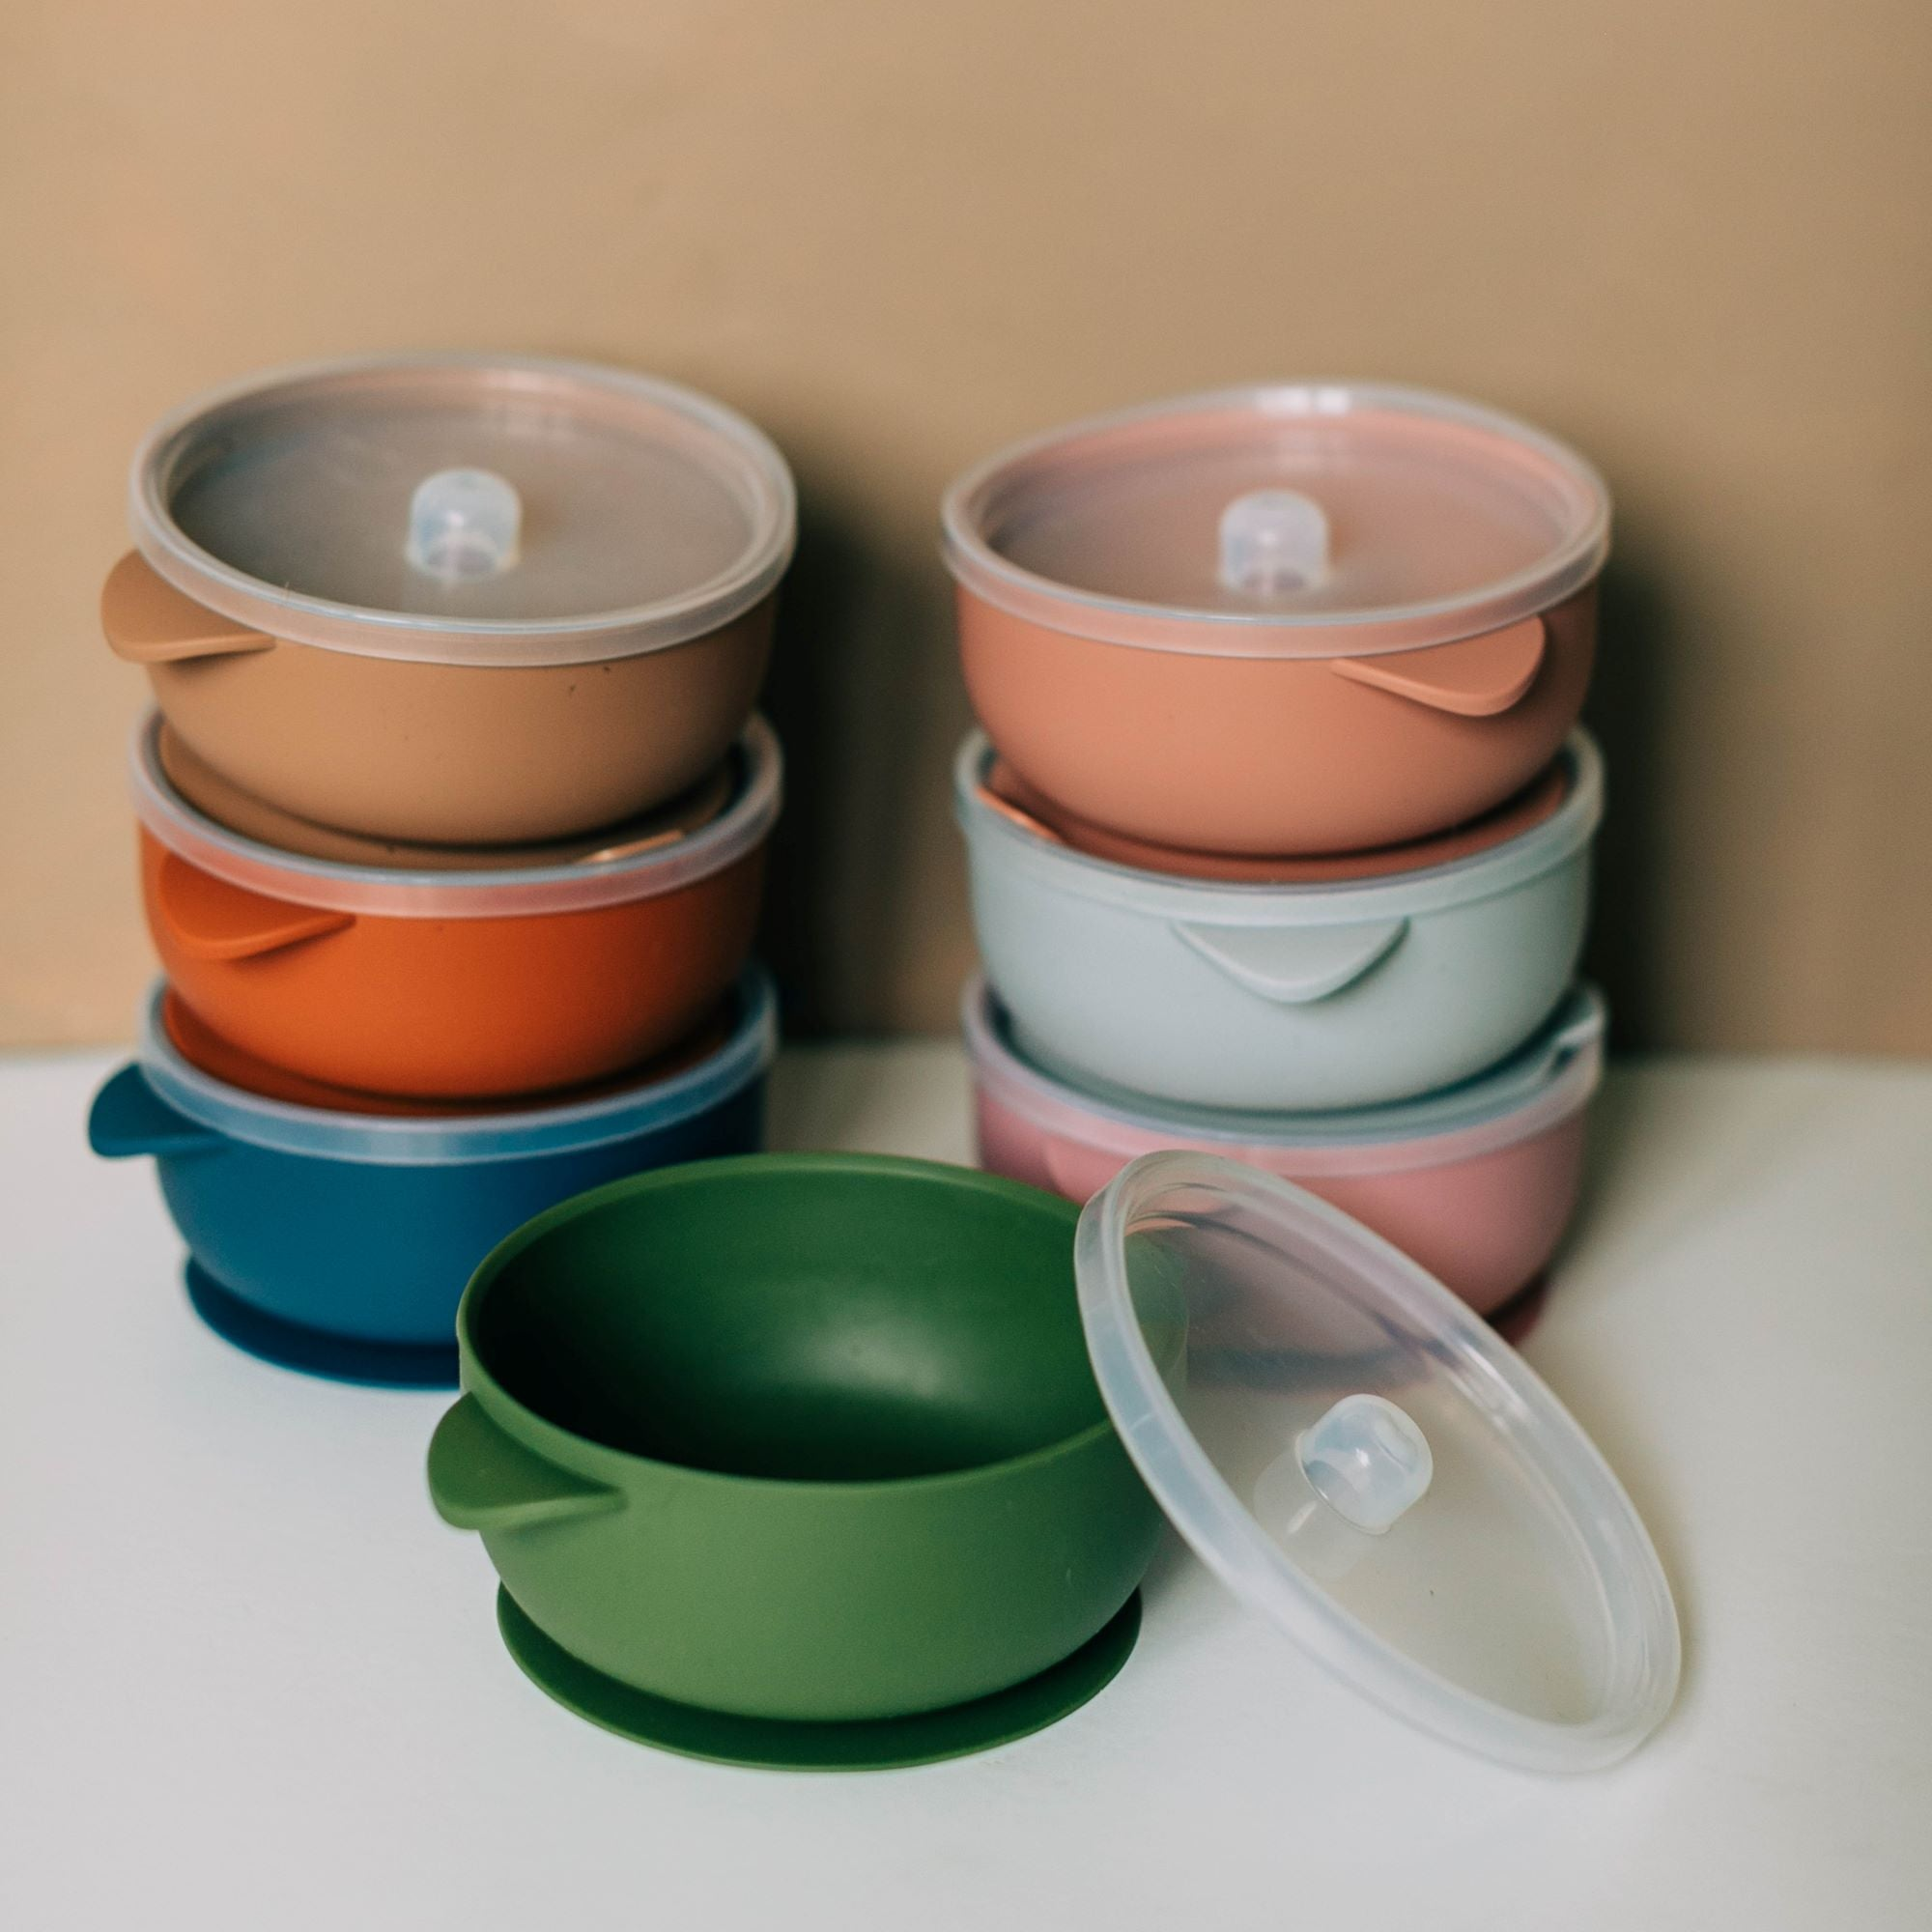 Neutral Tones Silicone Bowls